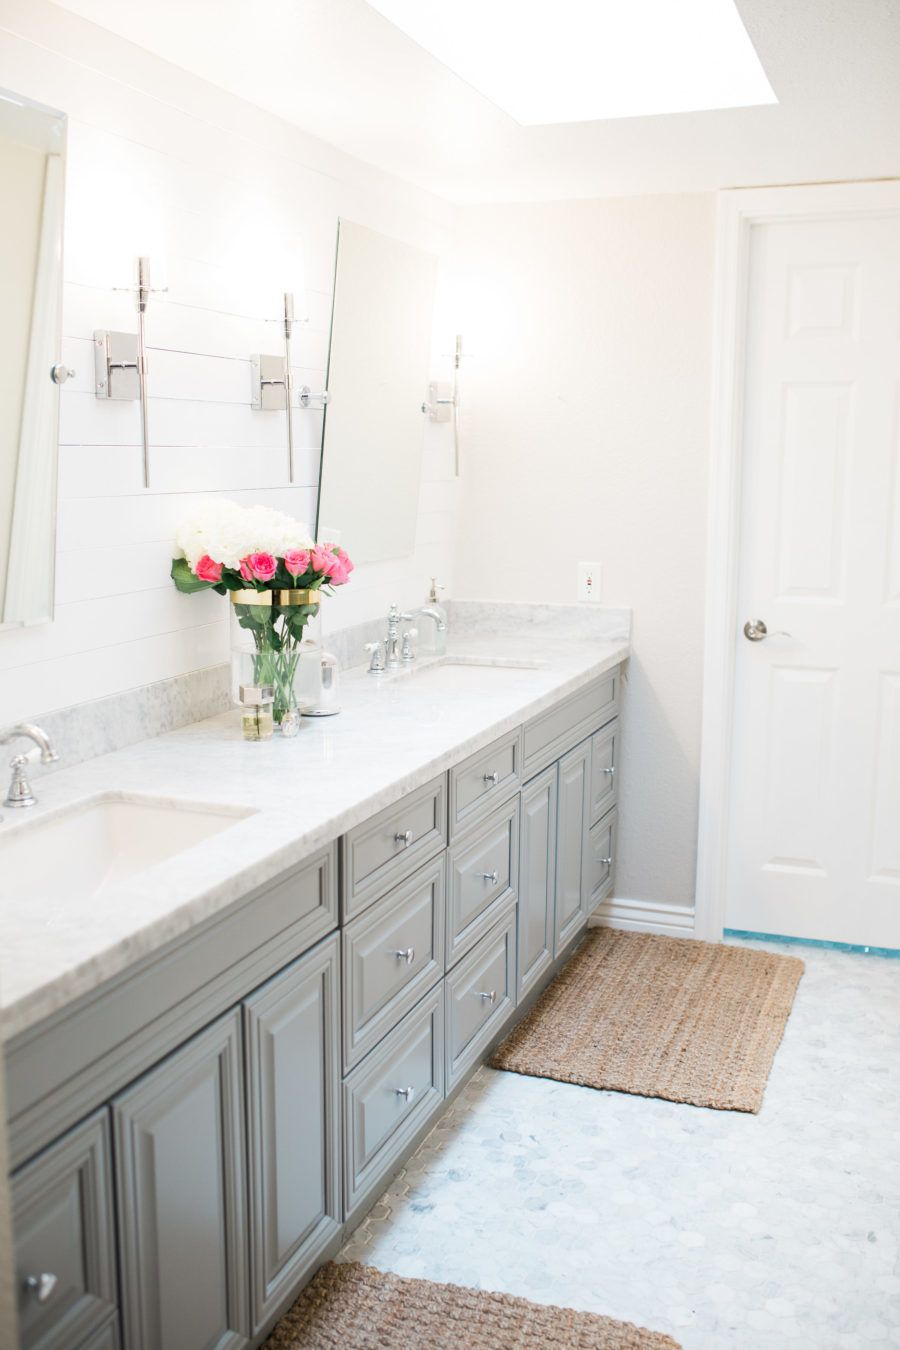 Master Bathroom Remodel Design Before And After On A Budget